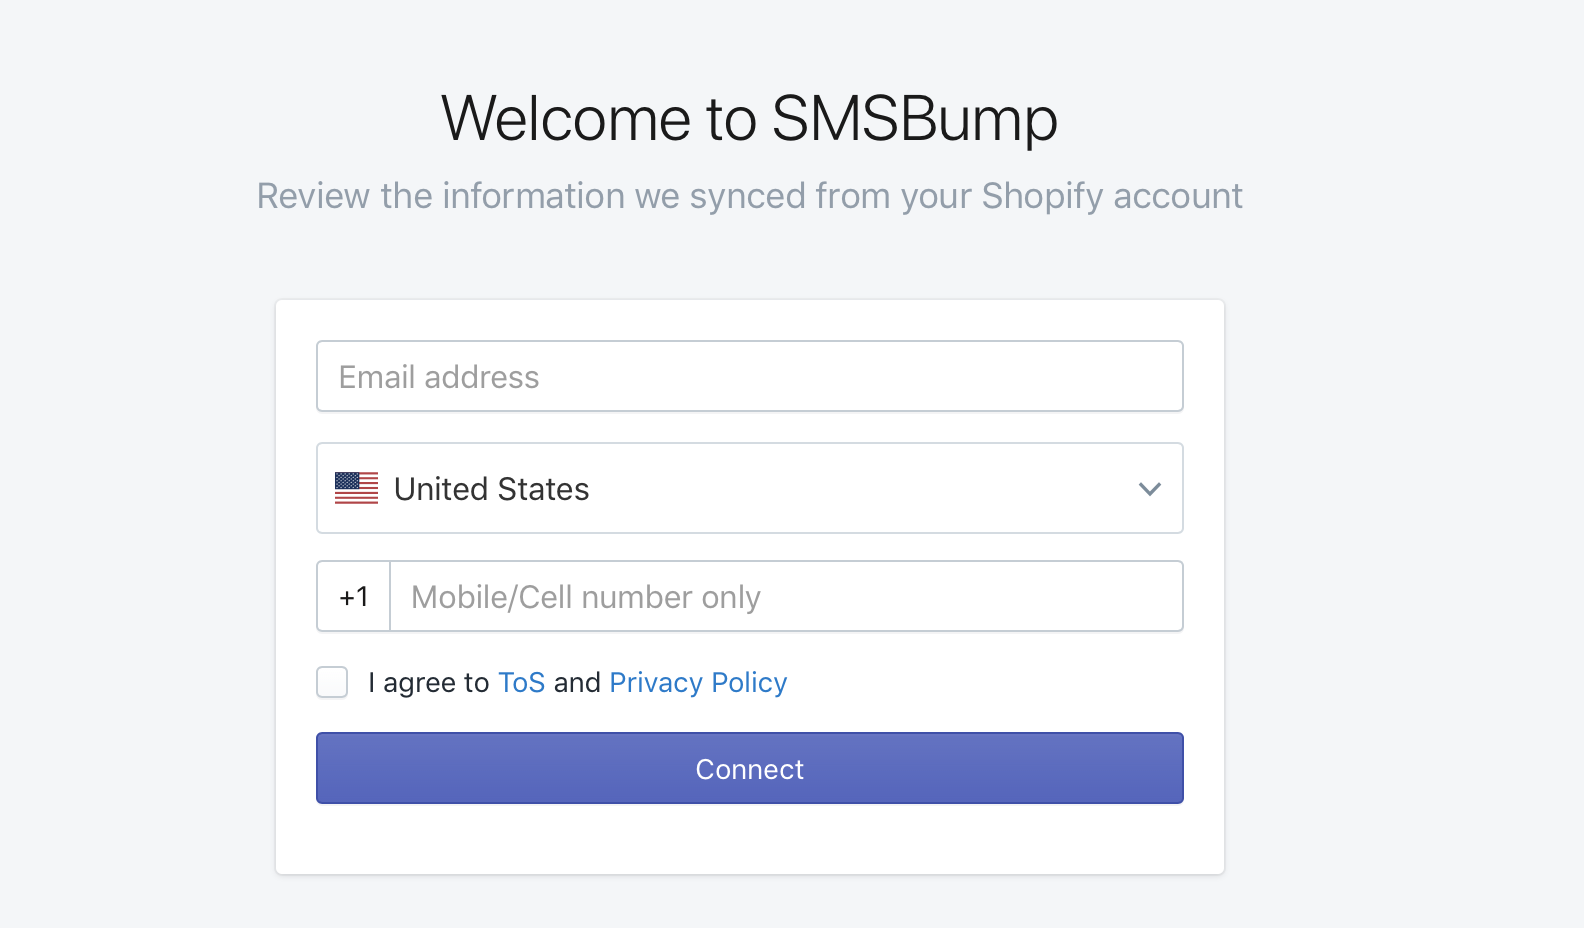 welcome_to_SMSBump_connect